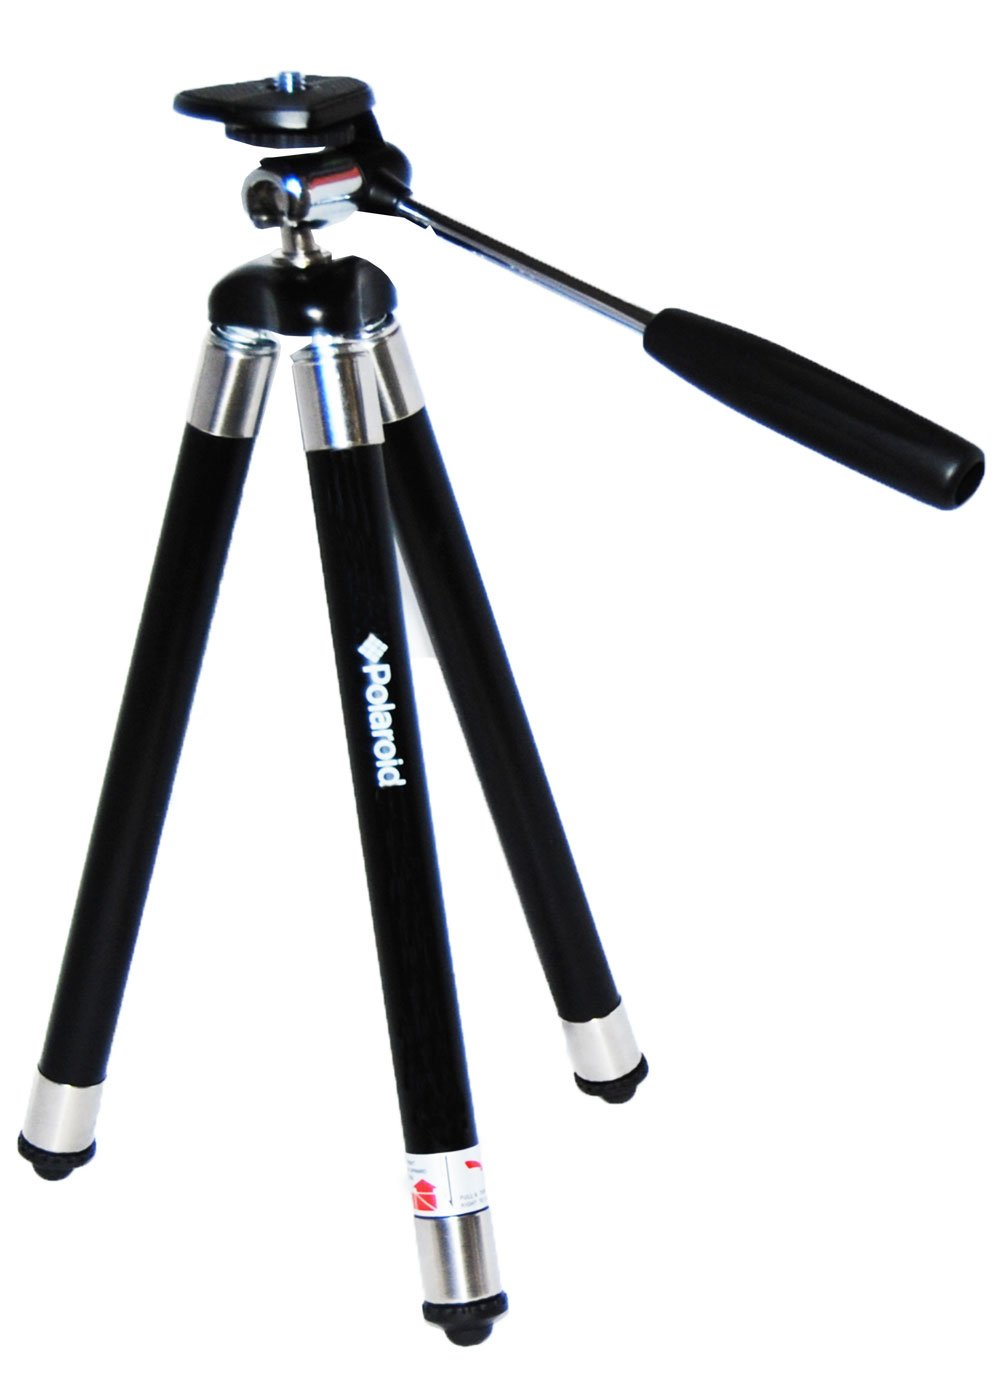 Polaroid Snap and Wrap Flexi Tripod with 360° Rotating Ball Head - Flexible Vertebrae-Like Legs & Rubberized Feet for Endless Conforming Ability & Sure Grip PLTRISWP